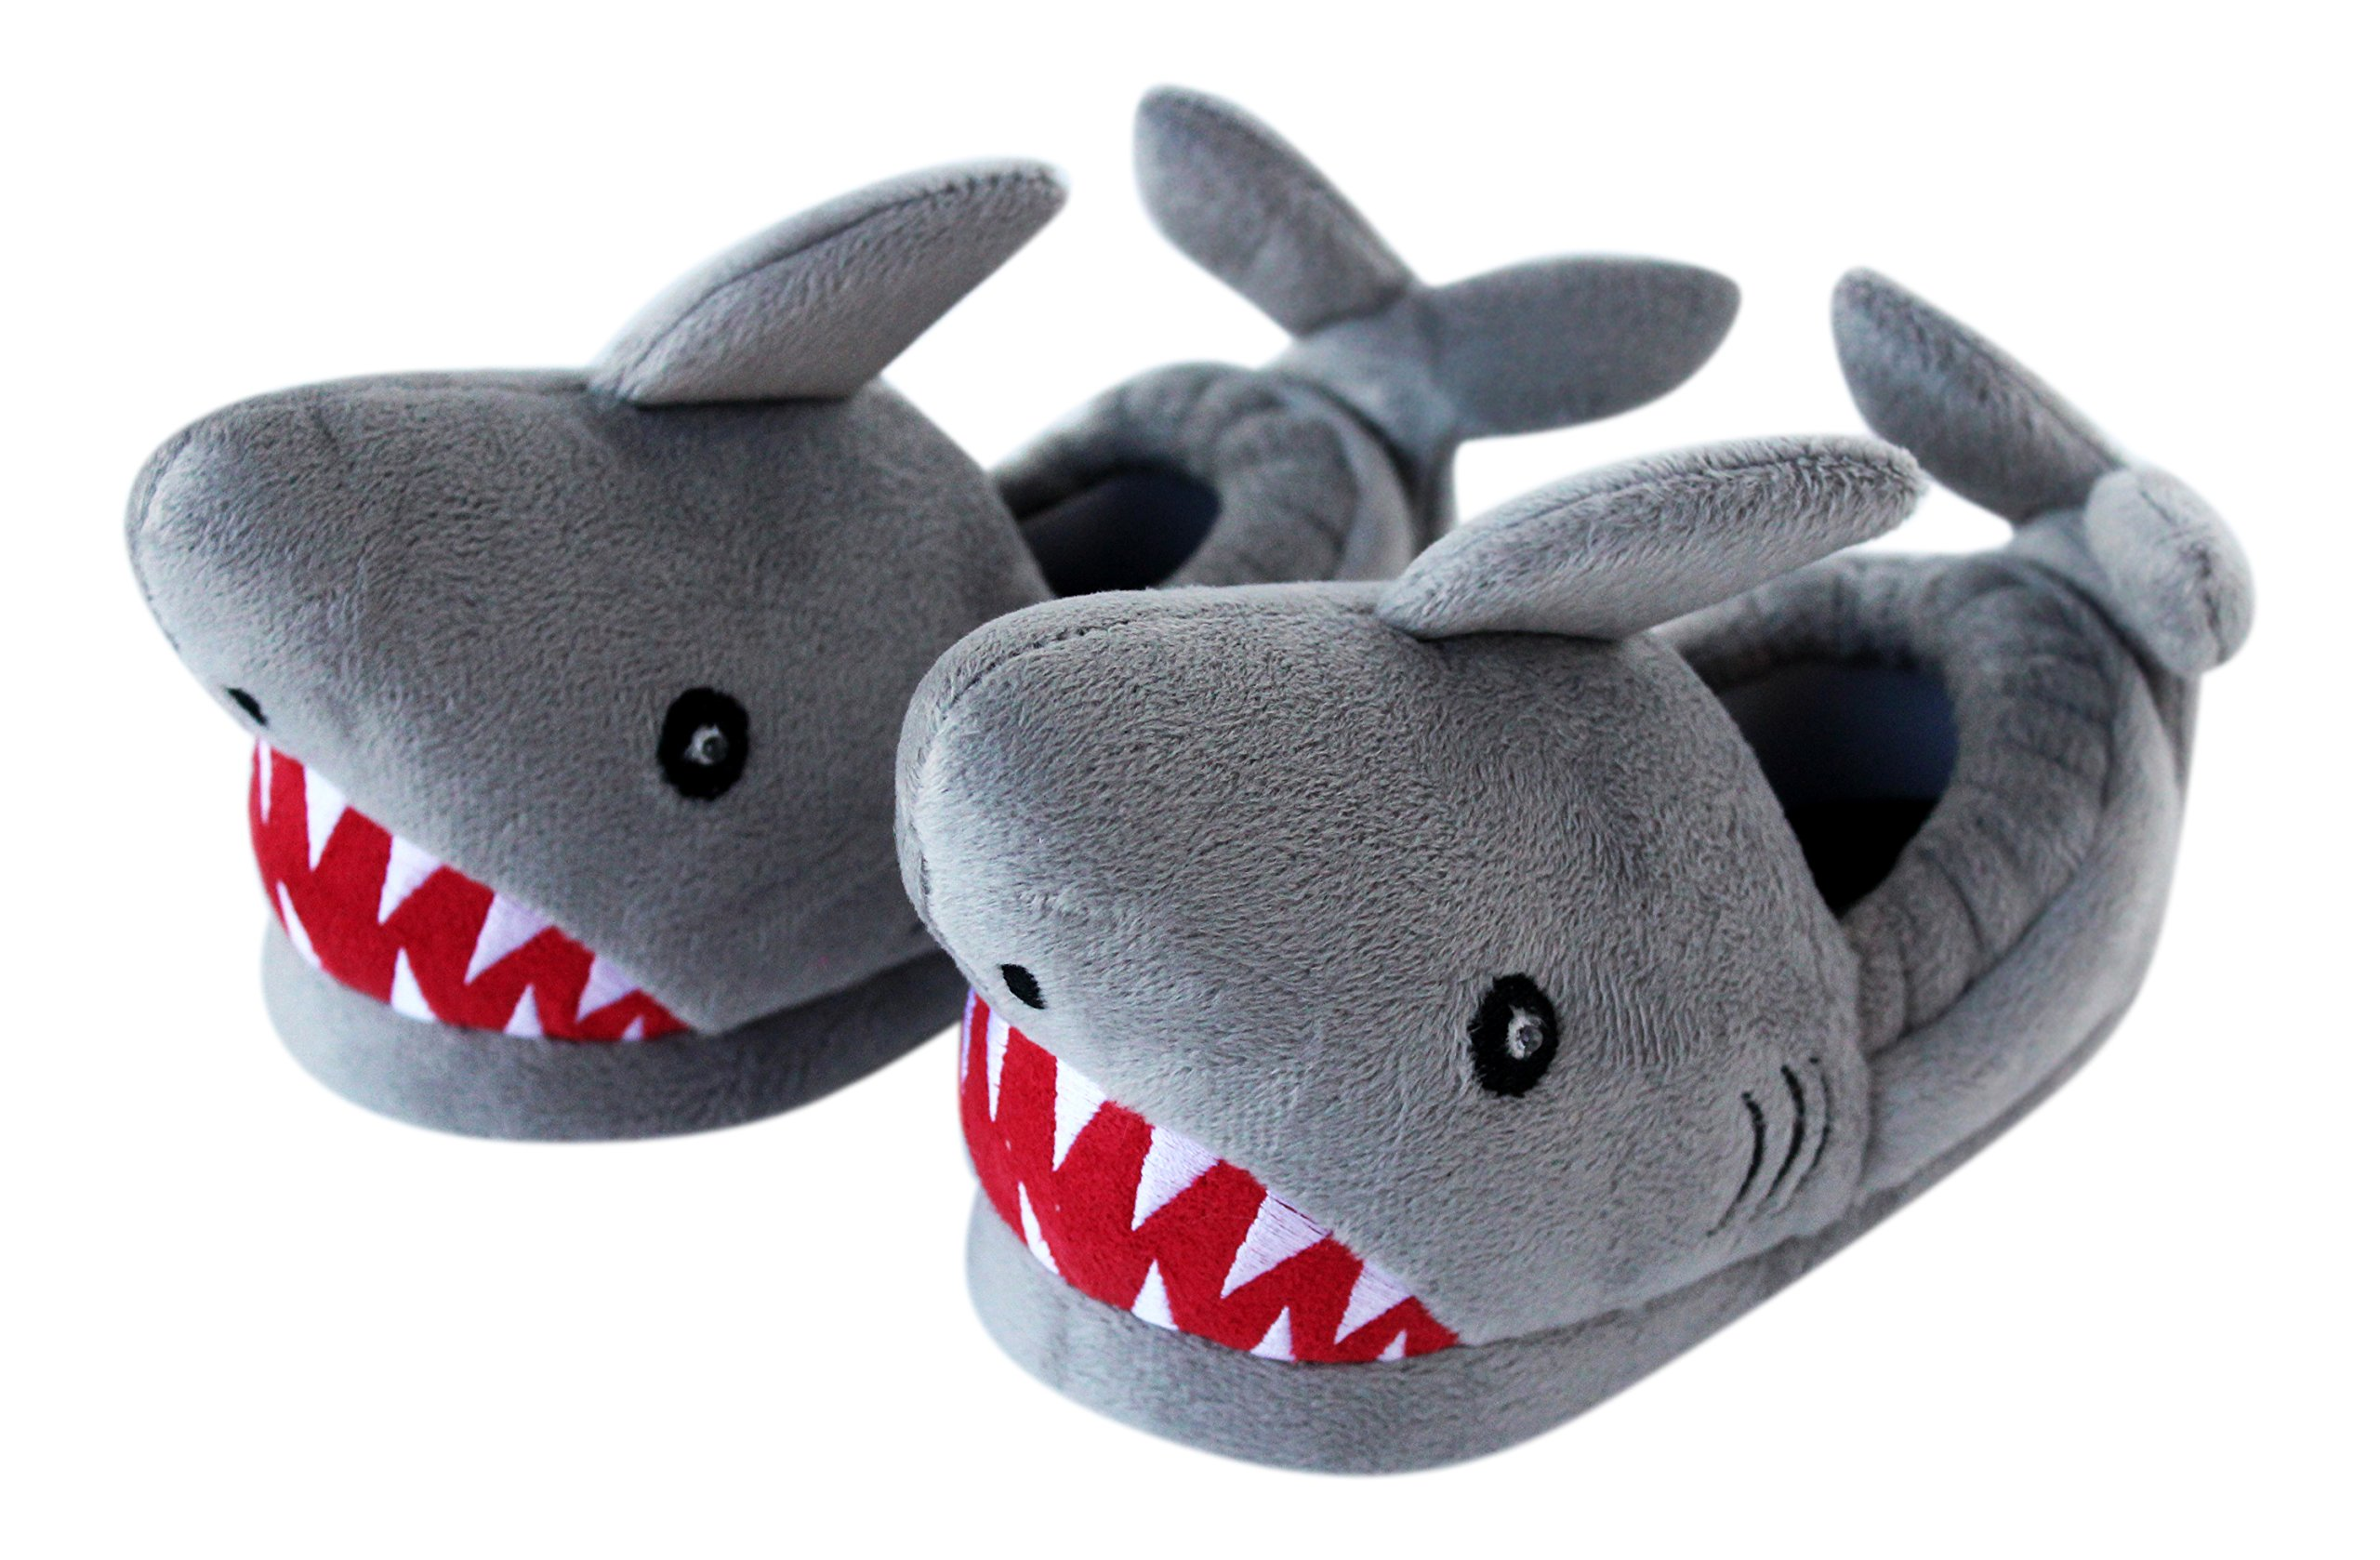 Trimfit Boys Light-Up Eyes Shark Slippers Moccasin, 13/1 by Trimfit